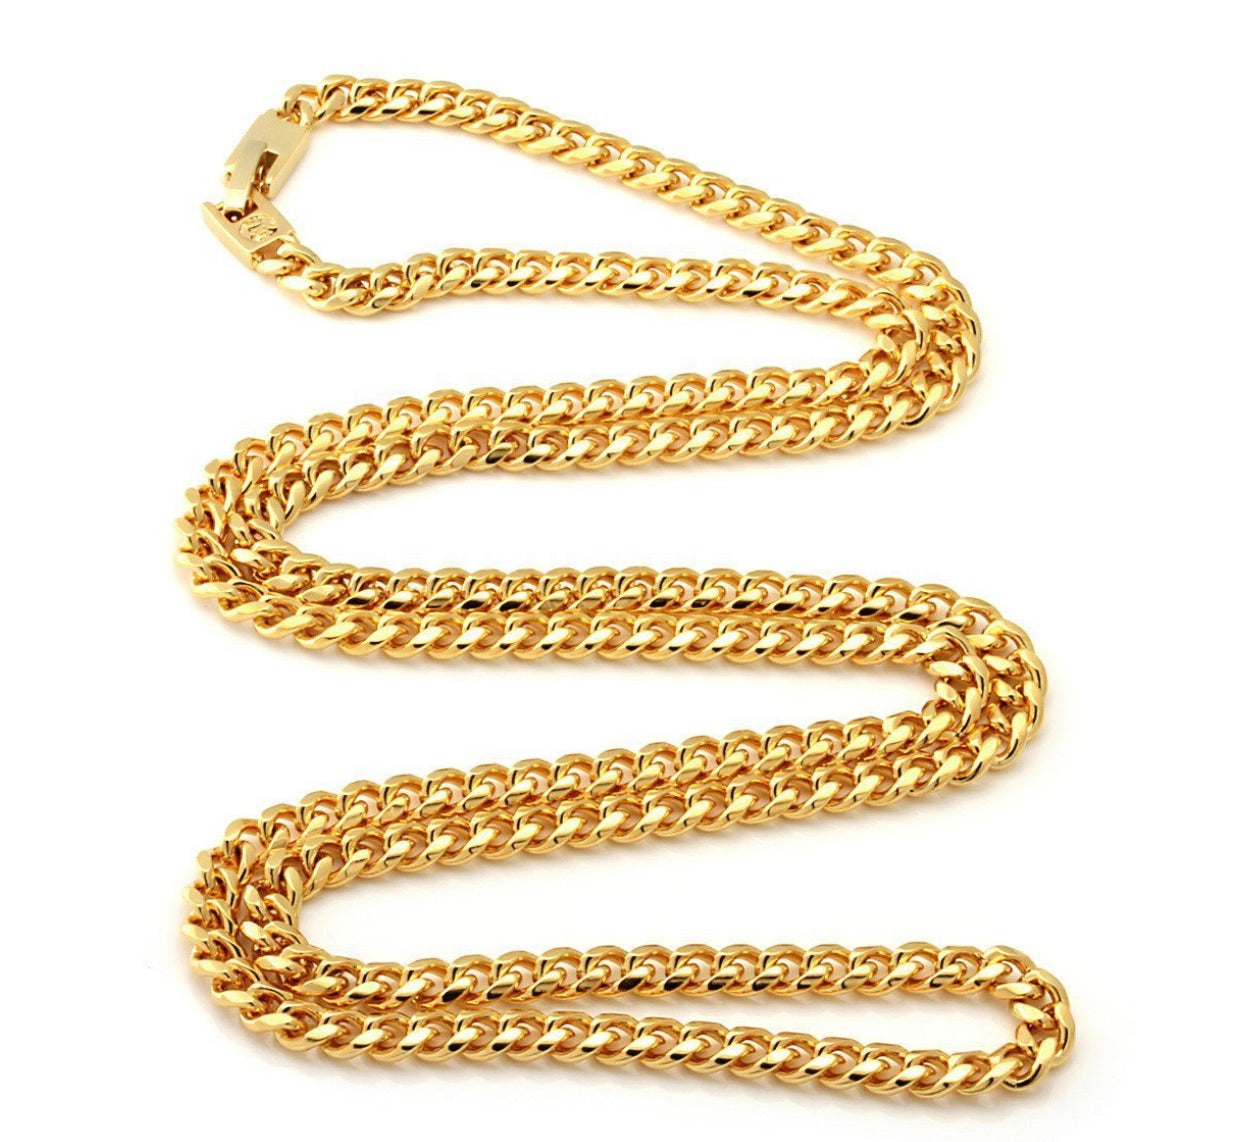 14K Gold 5mm, Miami Cuban Curb Chain - A&M